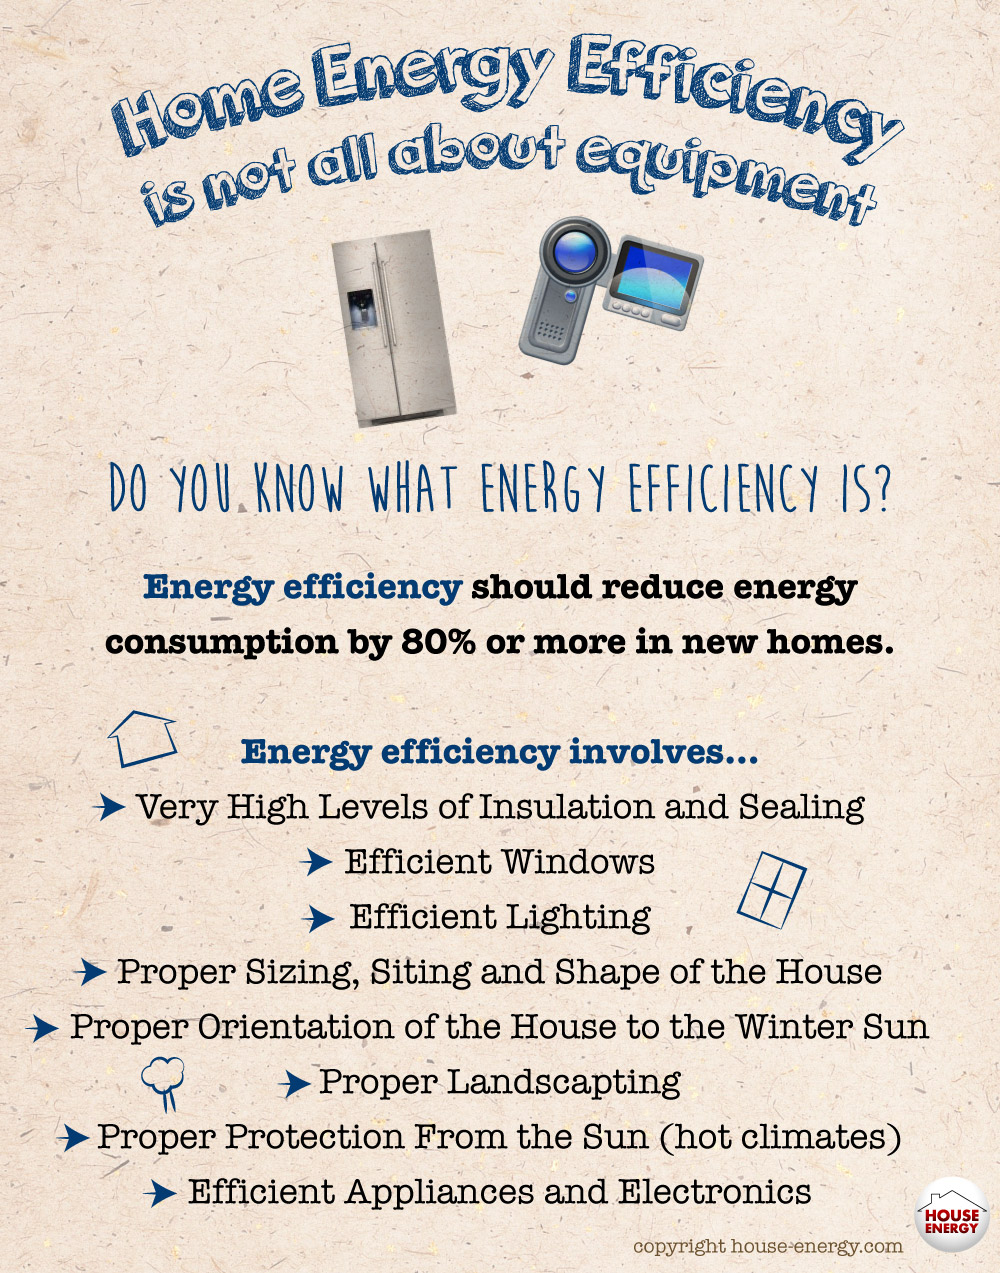 Home energy efficiency is not all about equipment